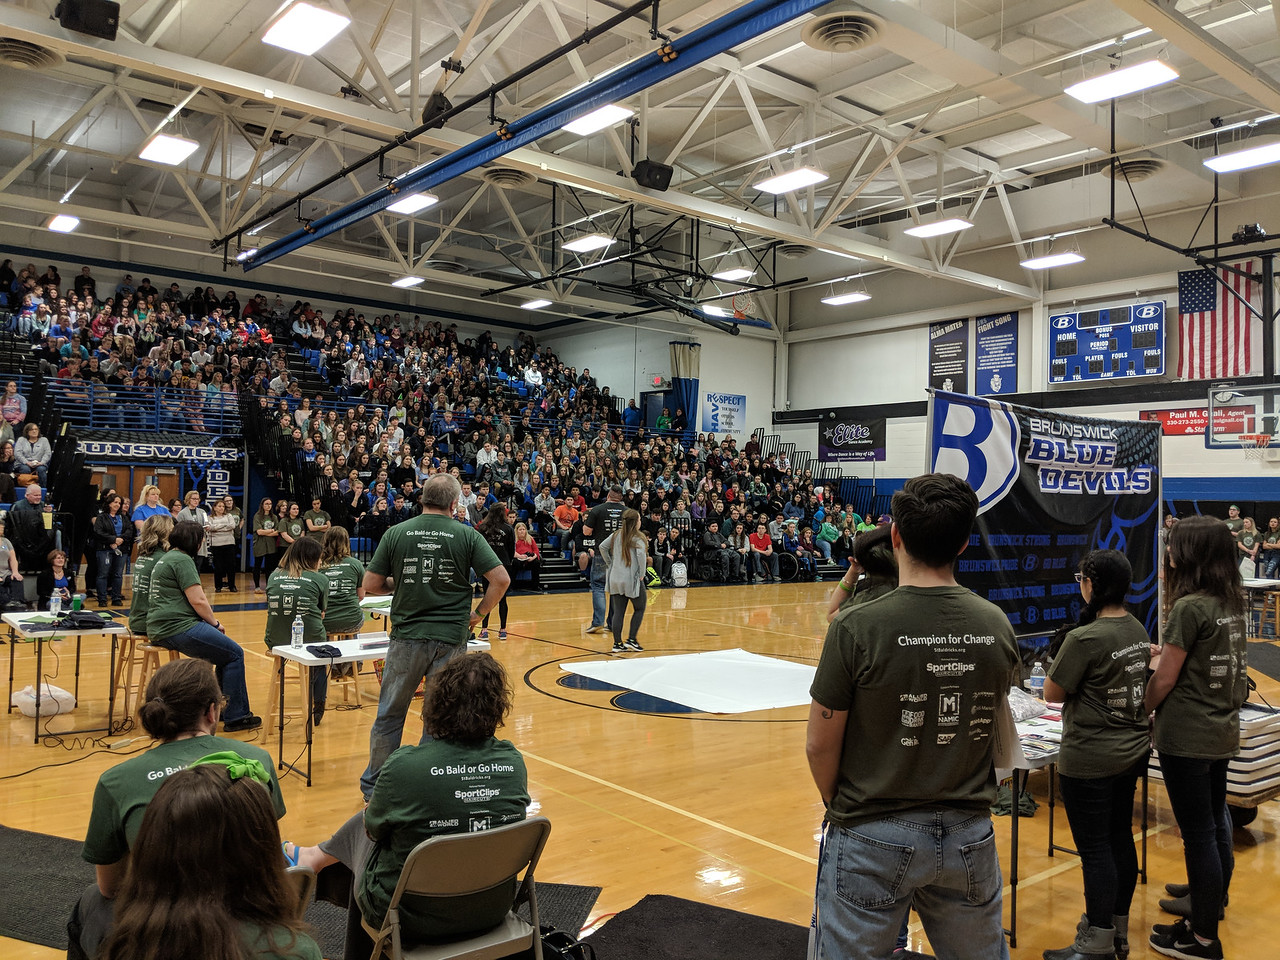 Students, faculty and community members gather for the second annual St. Baldrick's Day fundraiser